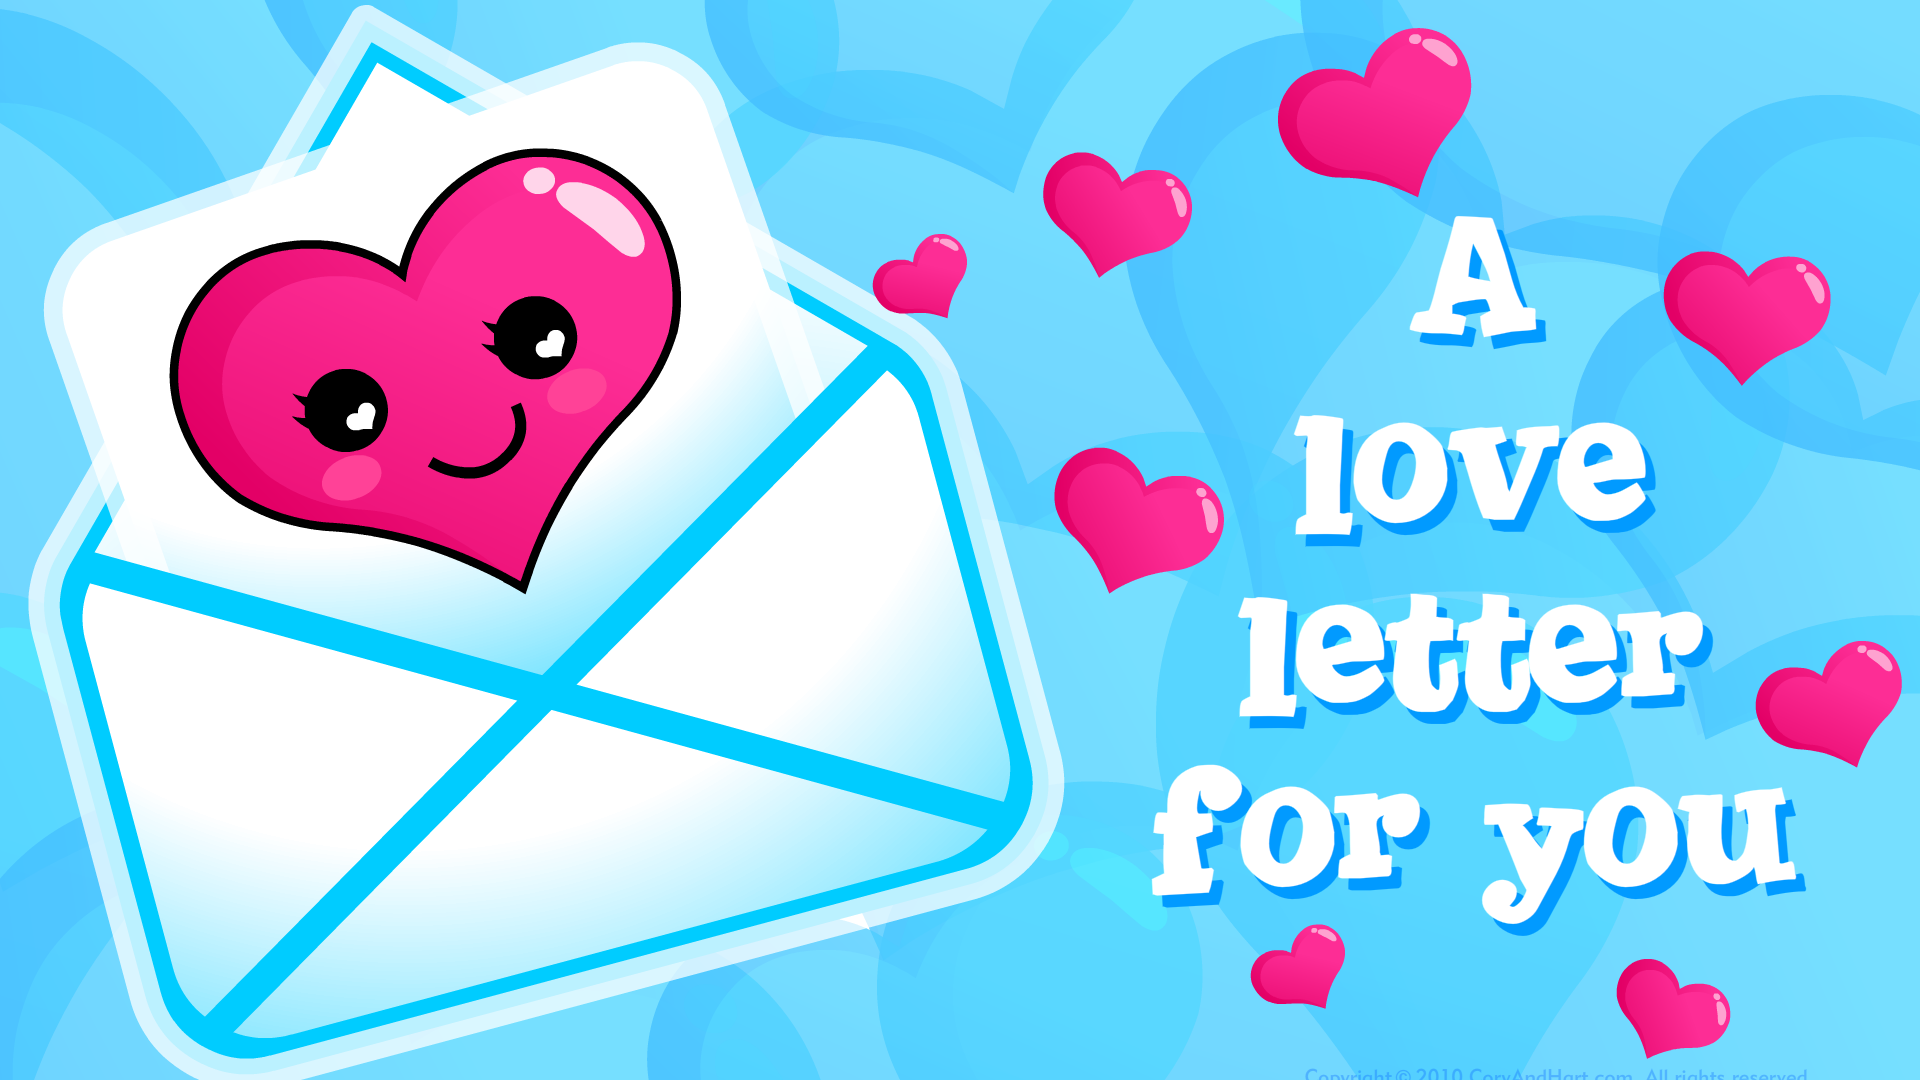 A Love Letter For You from wallpapercave.com